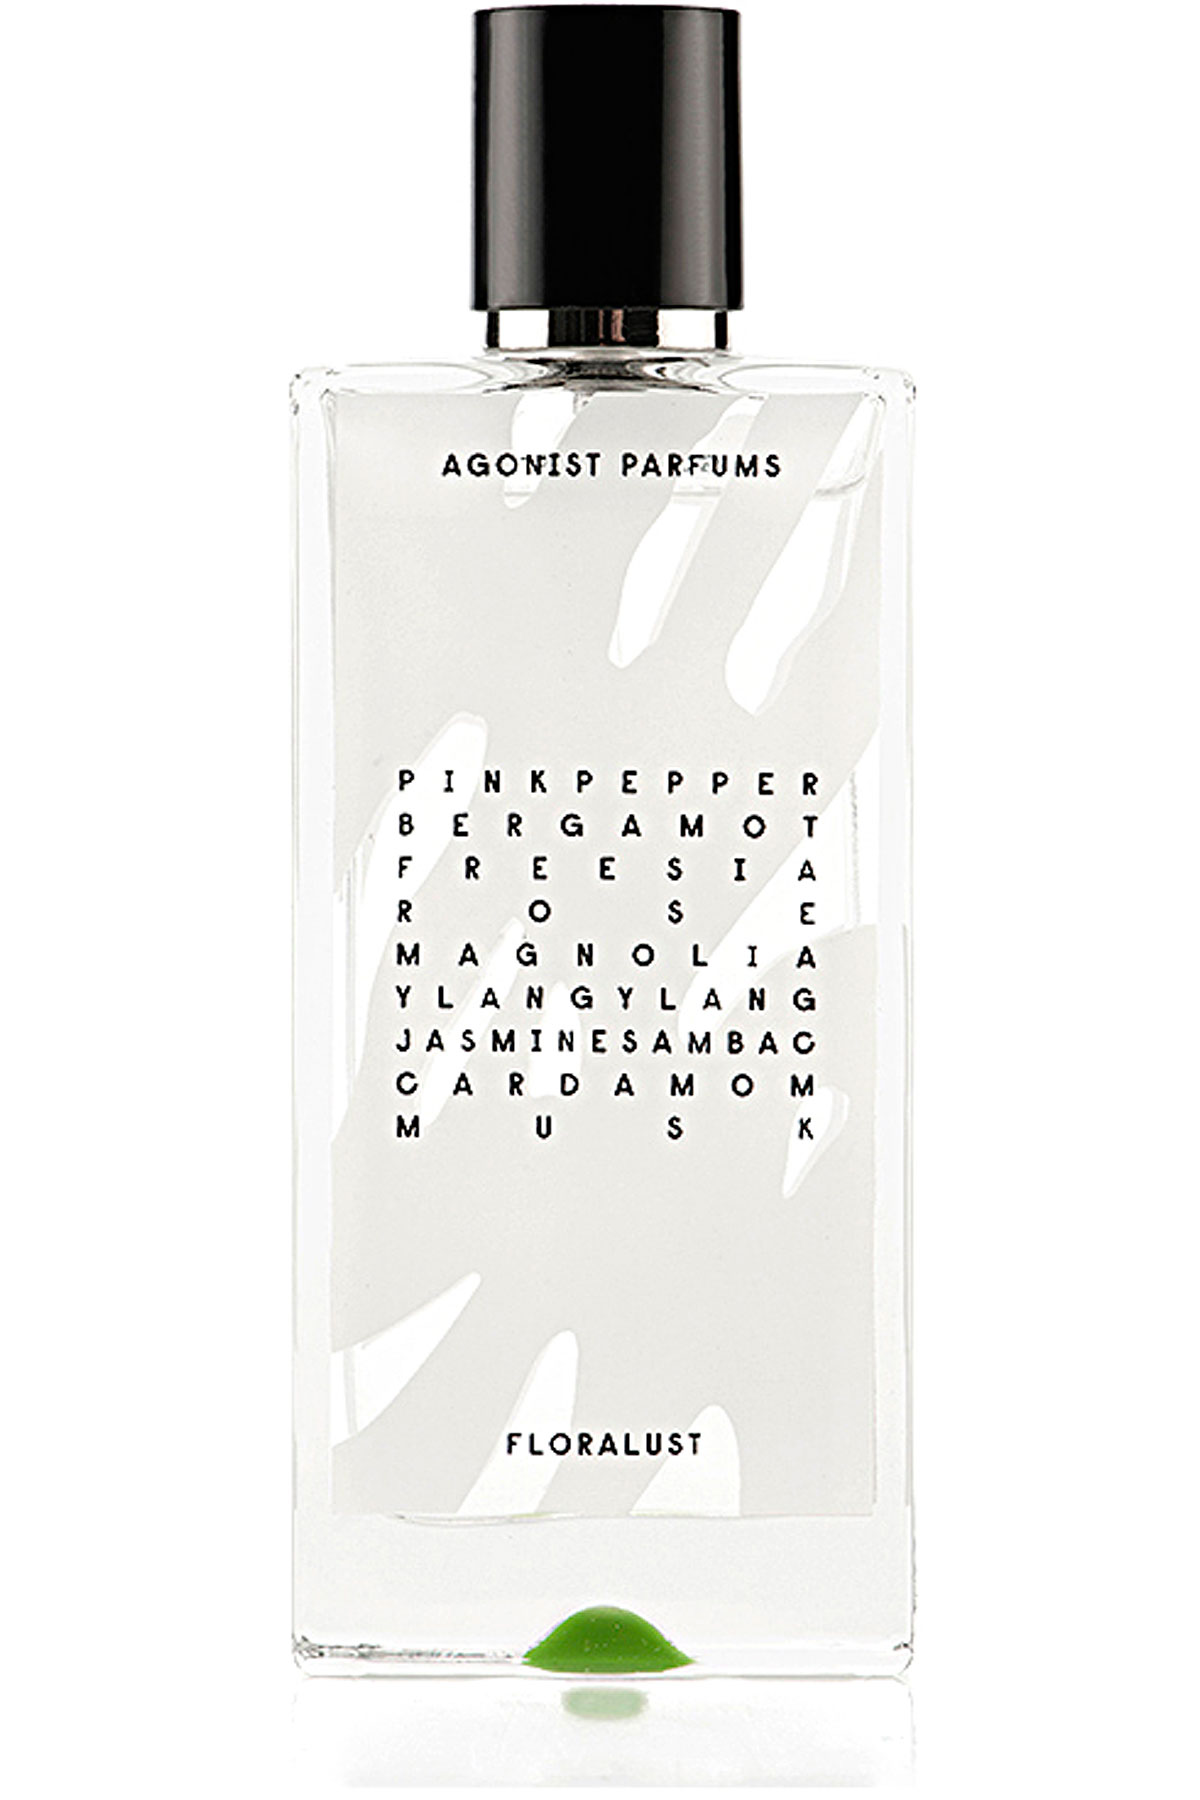 Agonist Fragrances for Men, Floralust - Eau De Parfum - 50 Ml, 2019, 50 ml